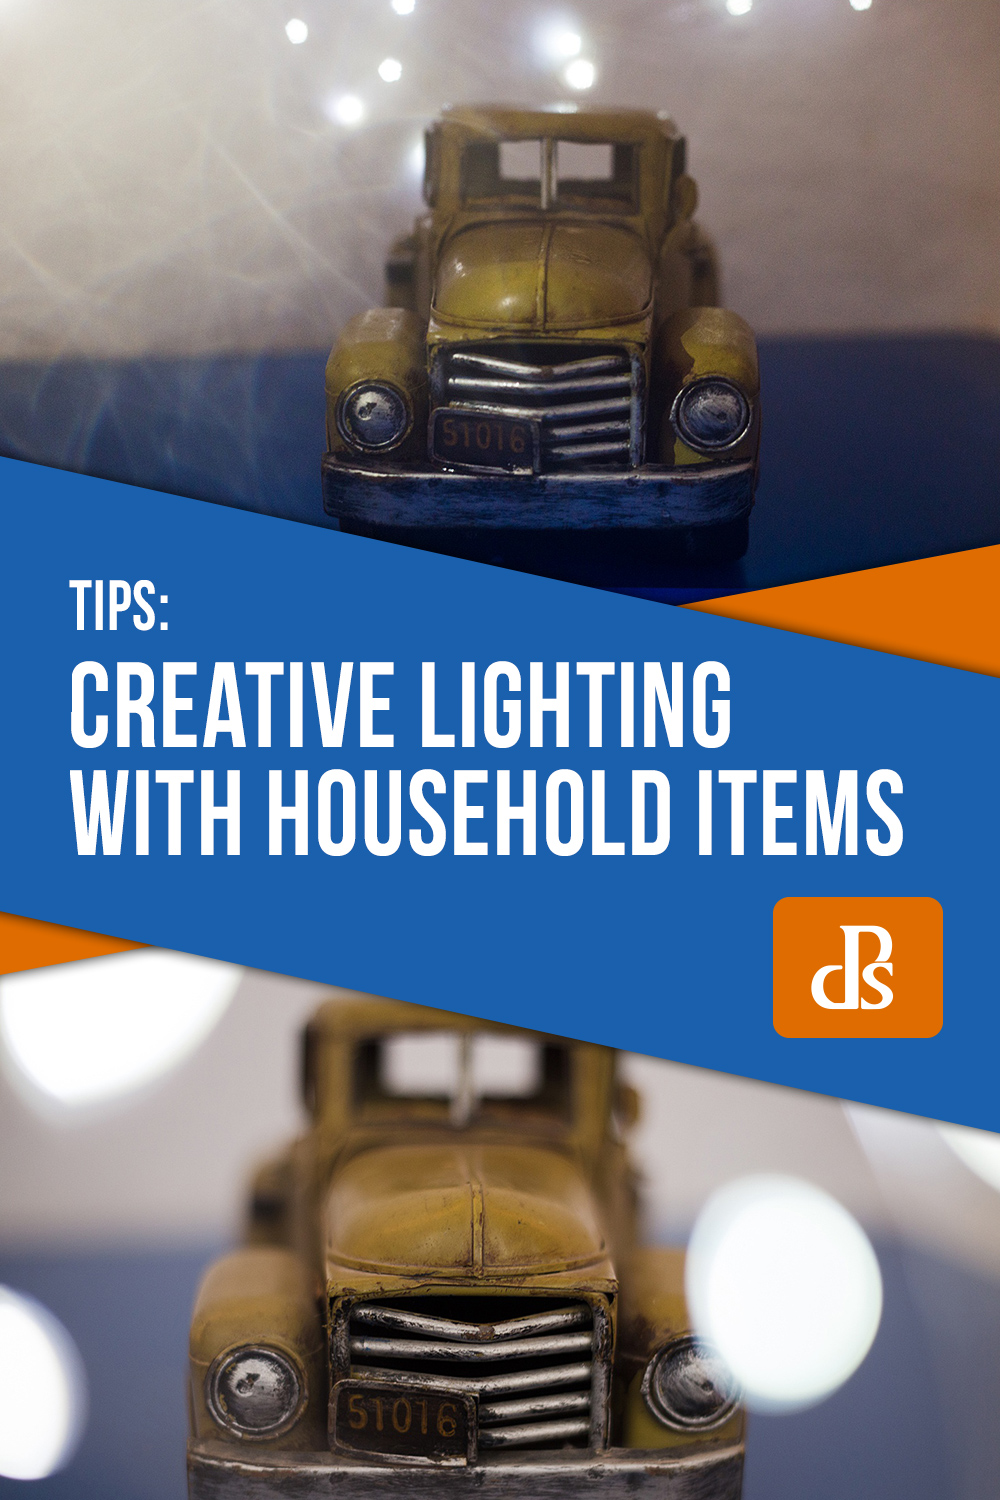 Creative Lighting Tips Using Household Items